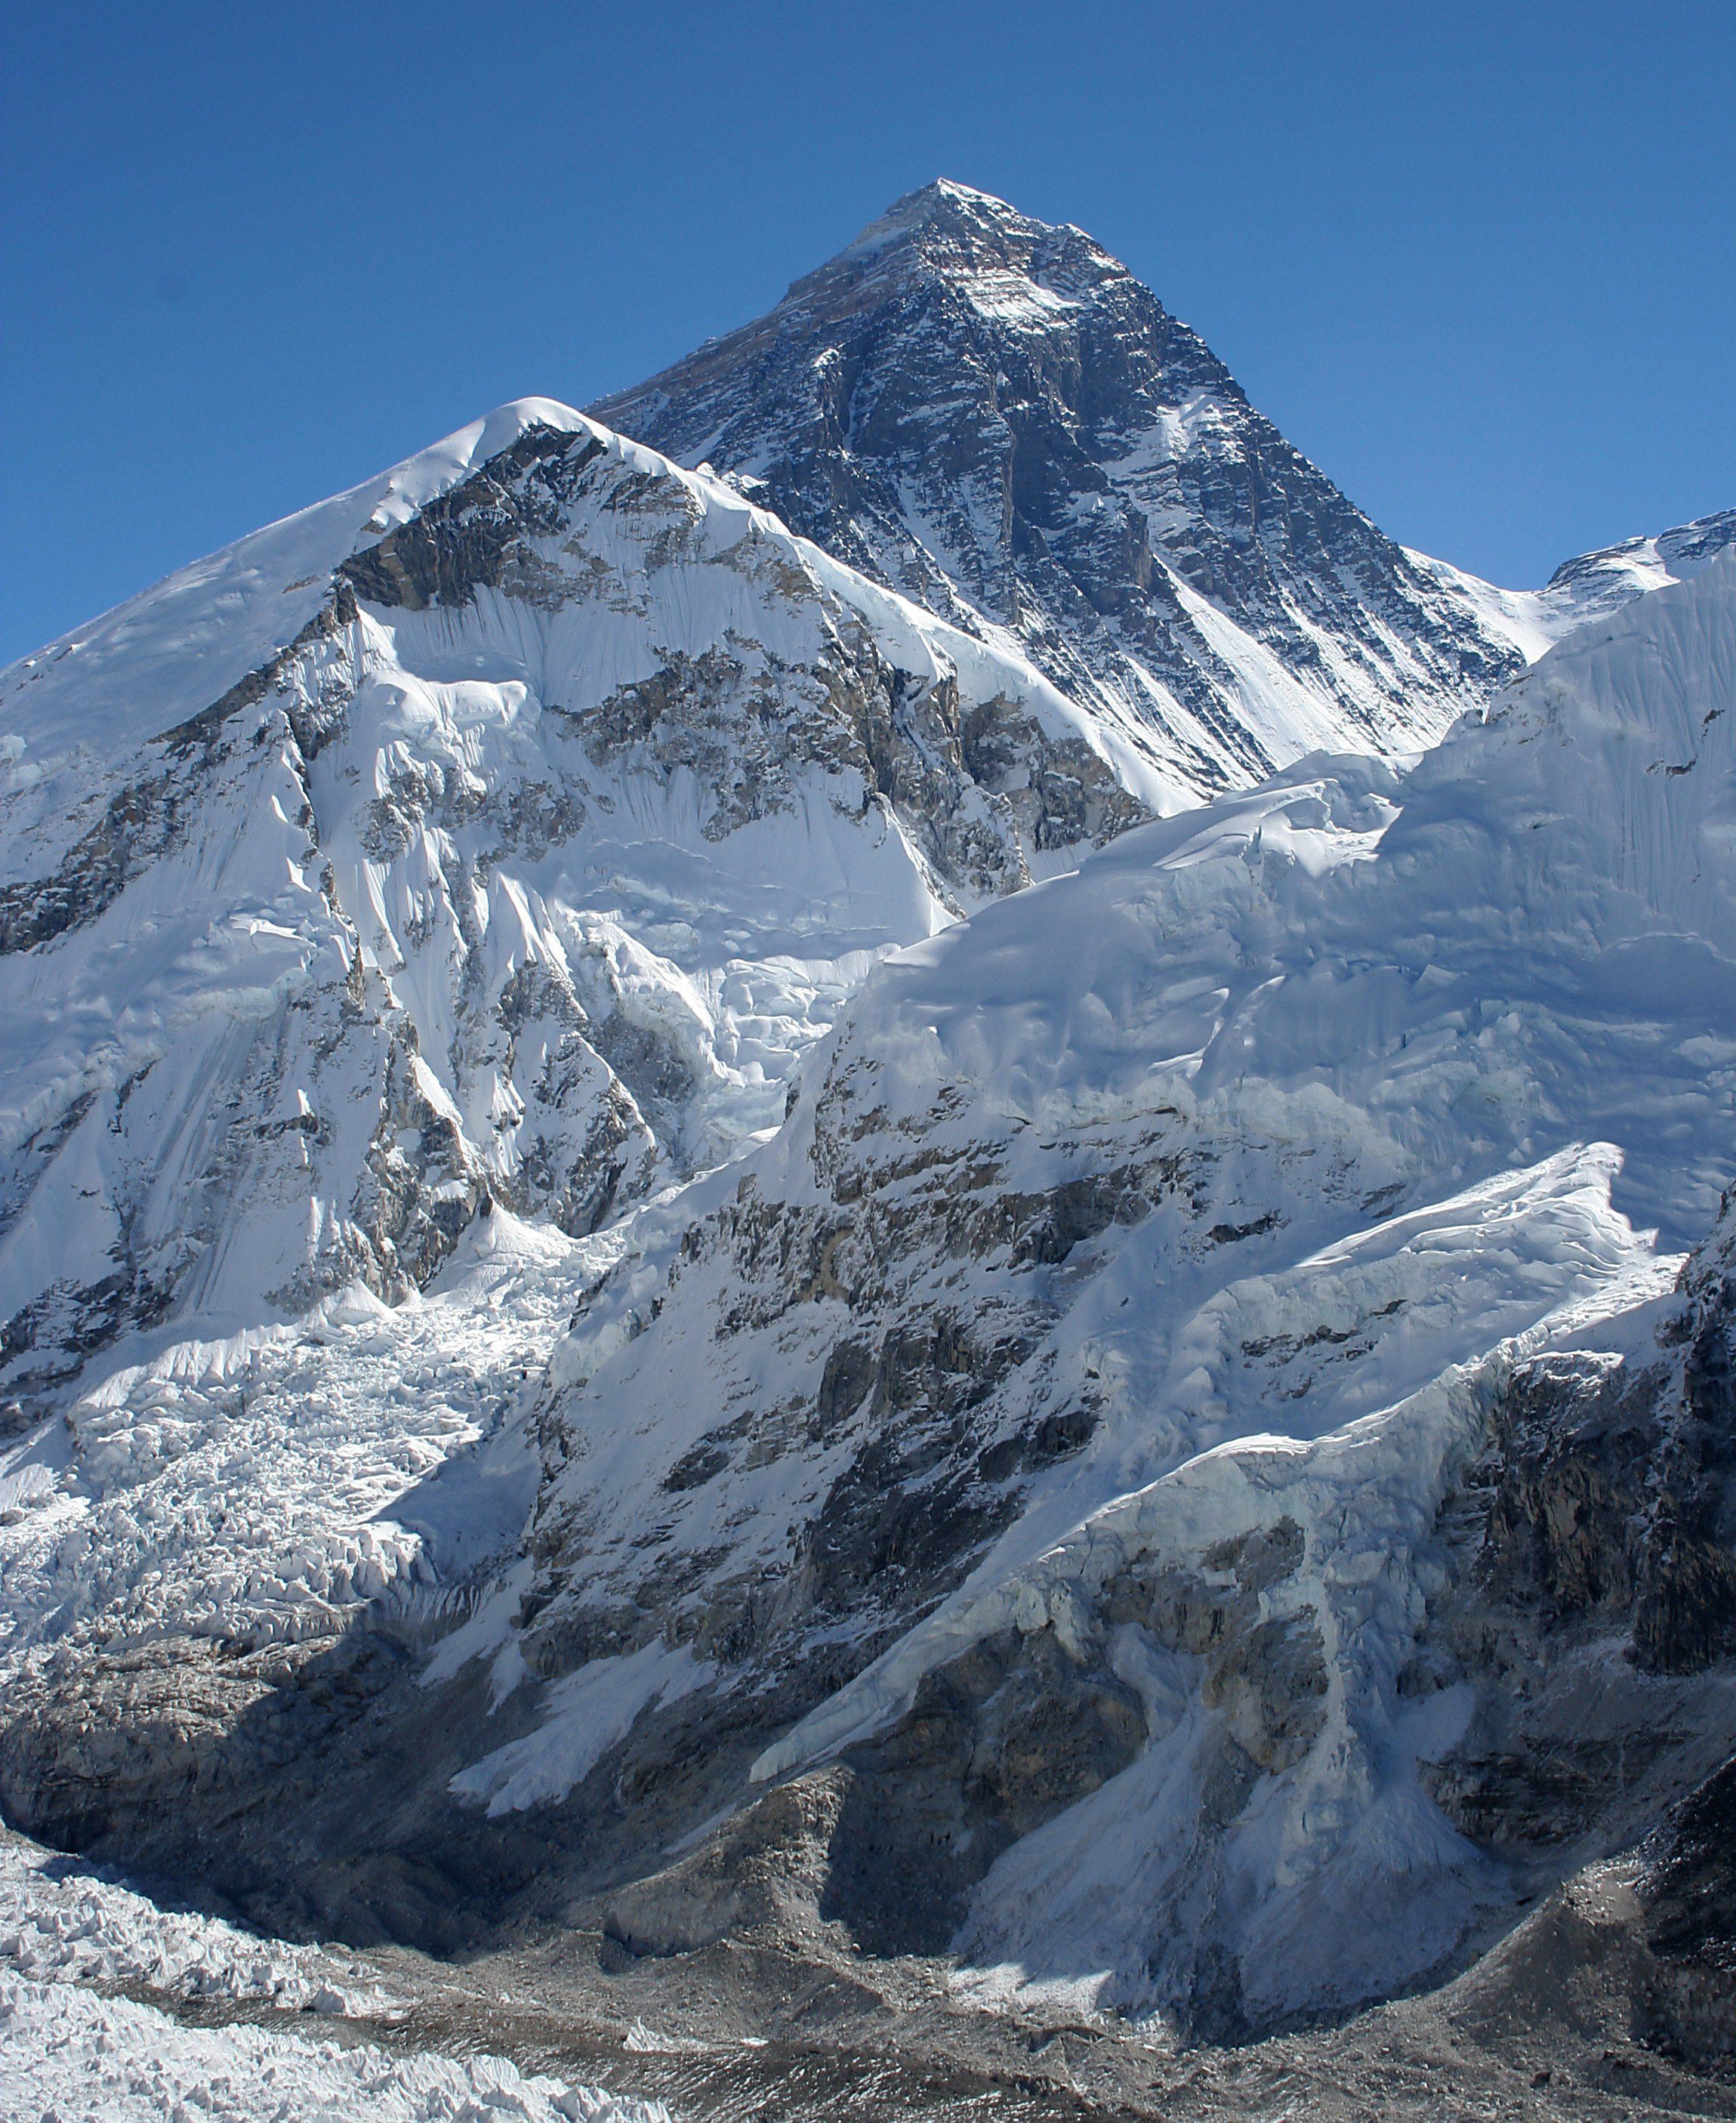 پرونده:Everest kalapatthar crop.jpg